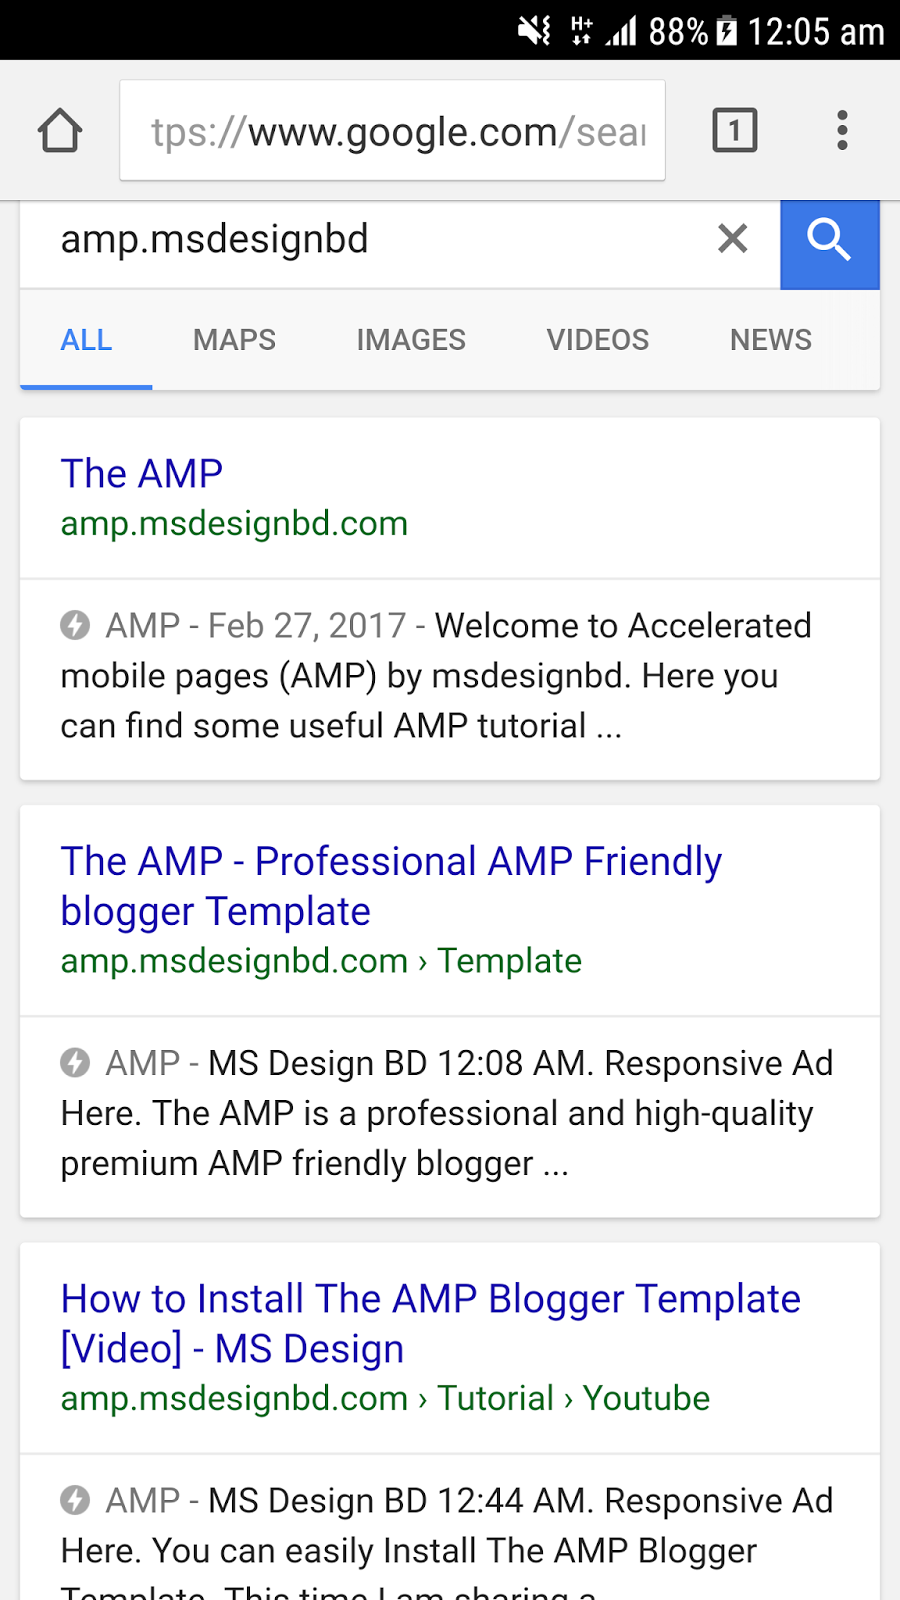 ms design free blogger templates 2017 if you looking for a high quality and professional amp blogger template then it will be perfect for your blog it also perfect for event niche blog also